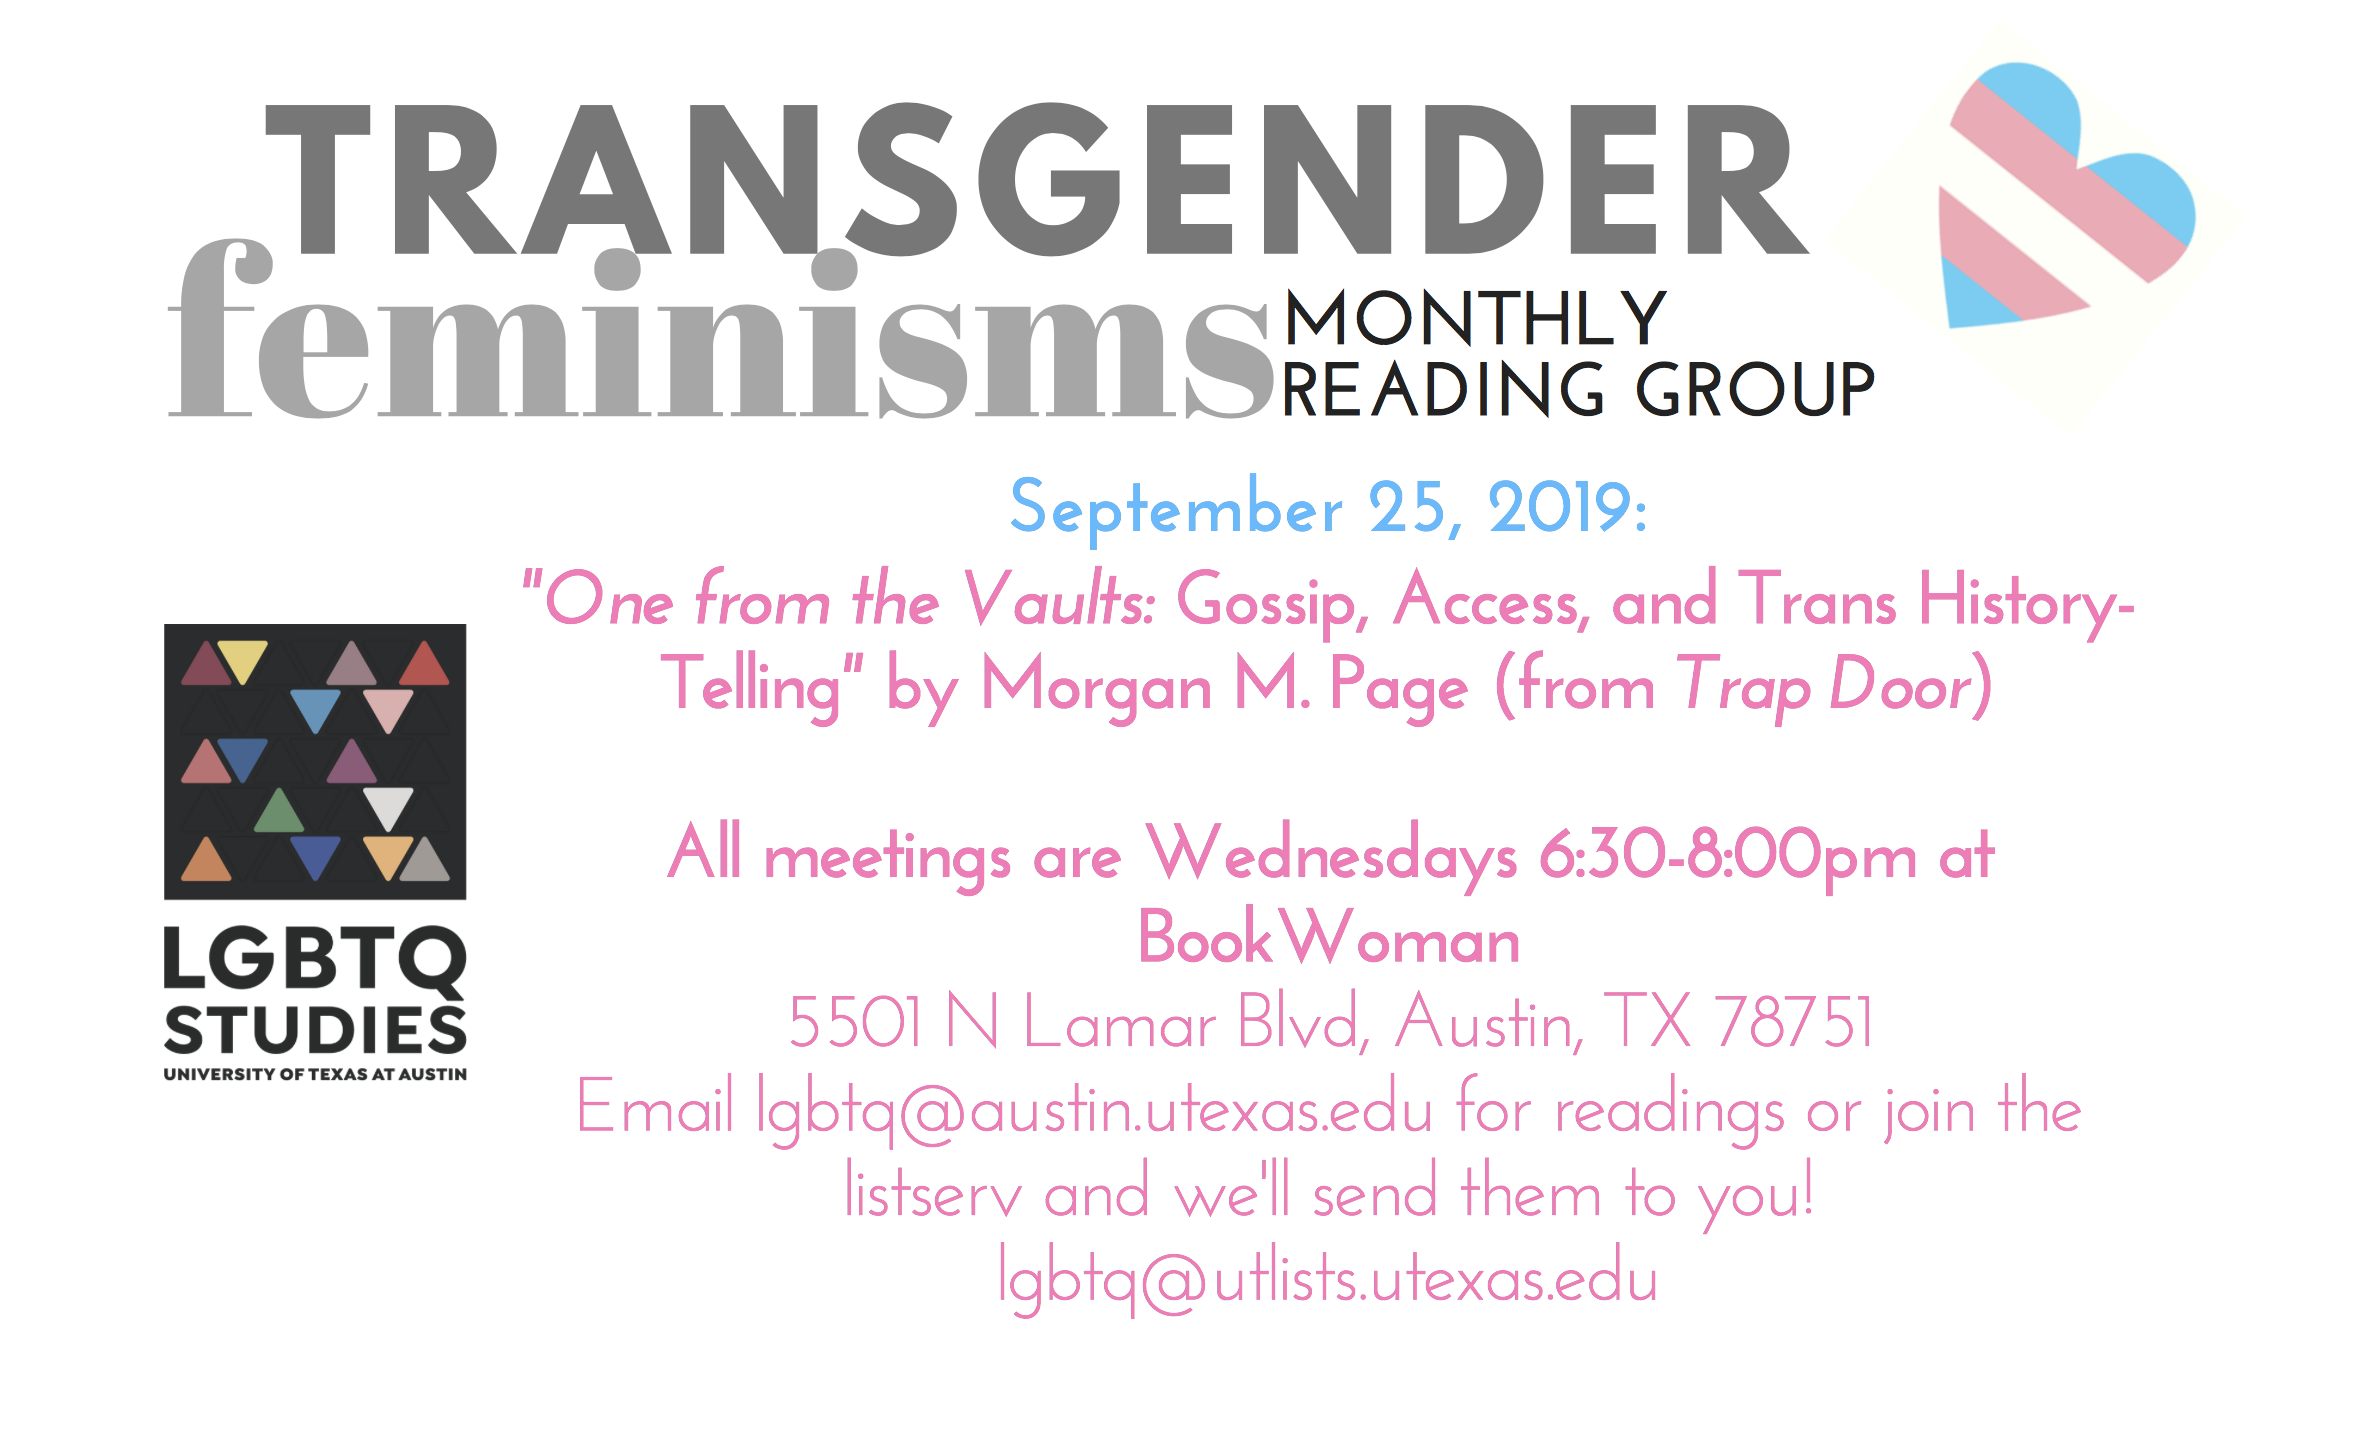 September Transgender Feminisms Reading Group